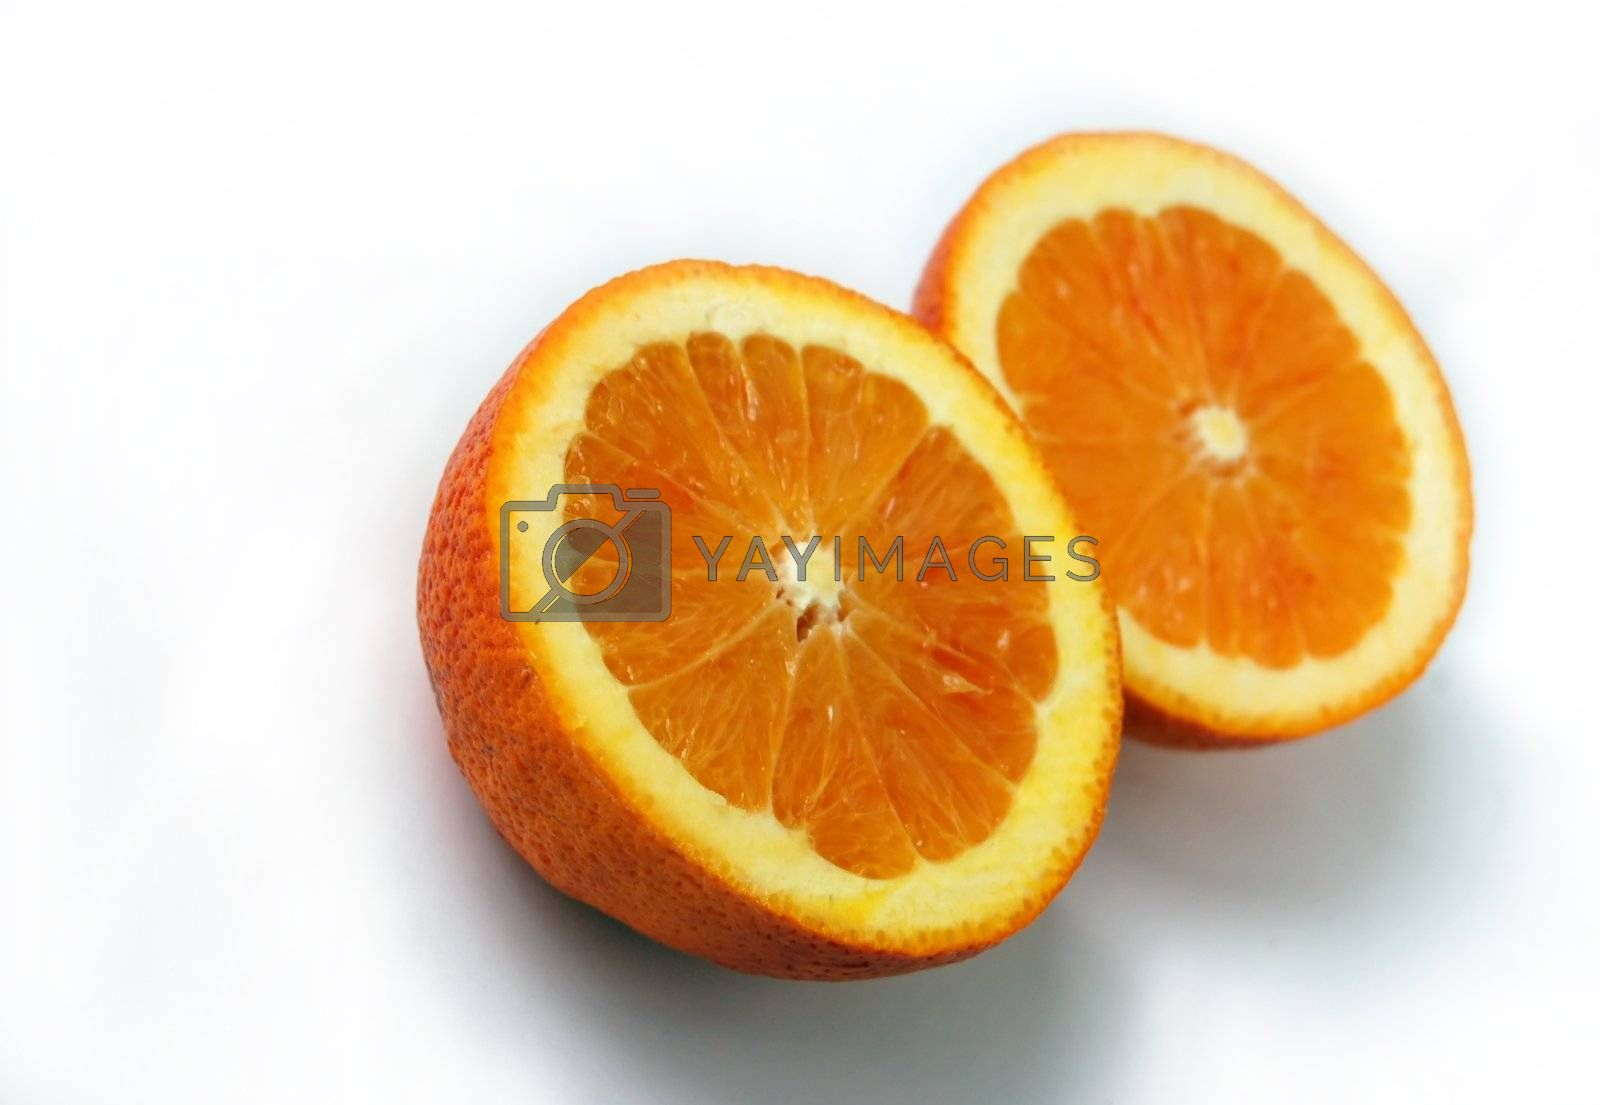 colored slices of orange with rough surface pattern isolated on white with shadows